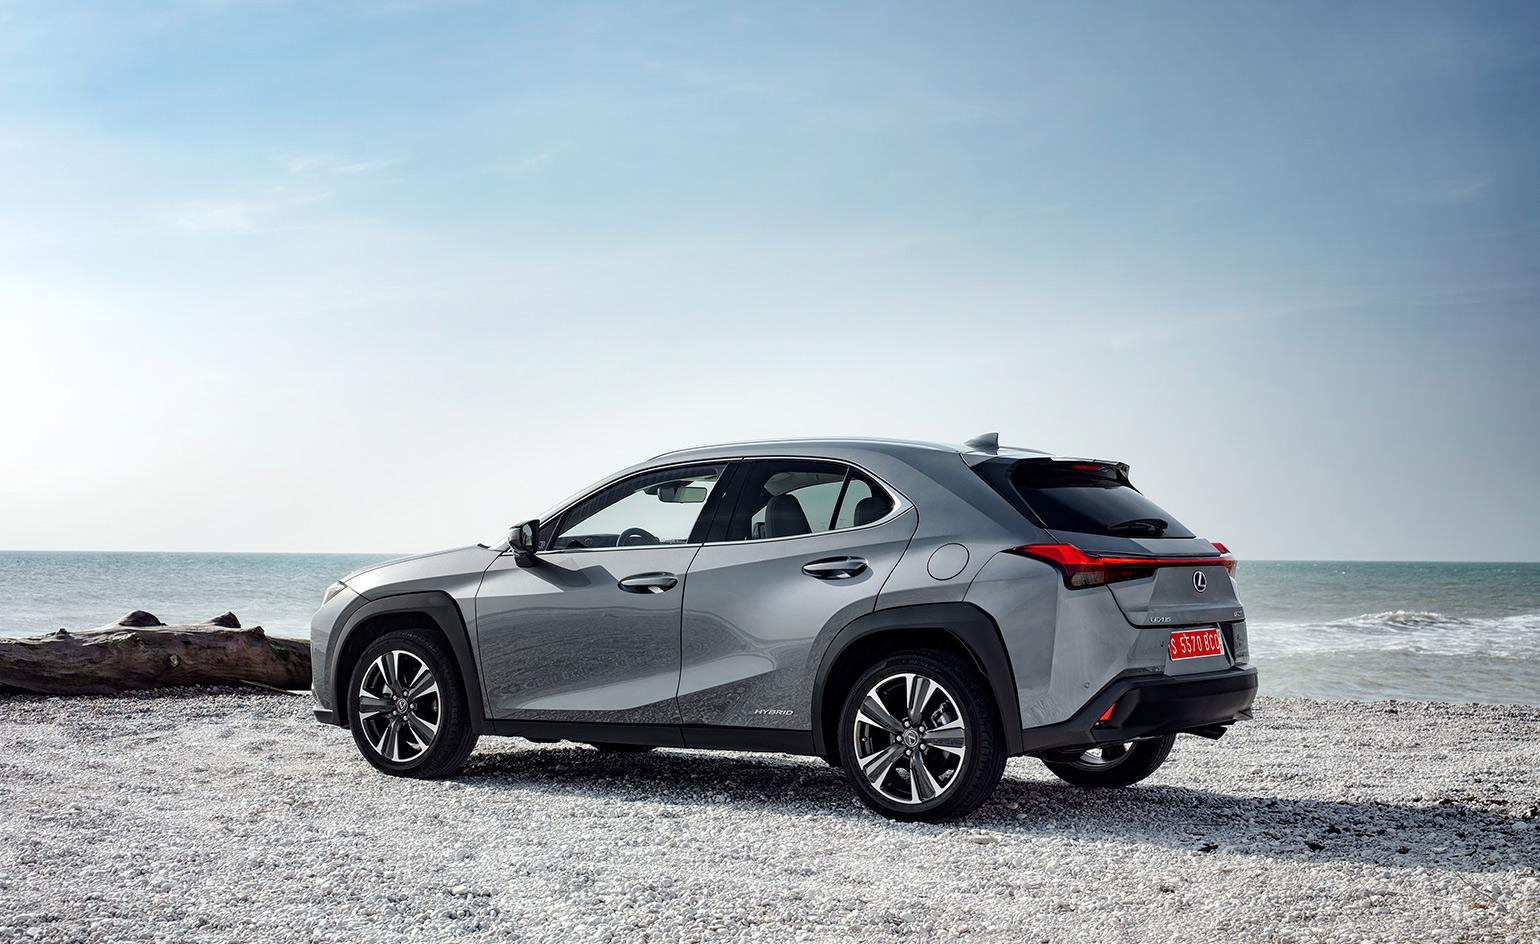 Lexus Hybrid Suv >> Lexus UX 250h hybrid review and test drive | Wallpaper*